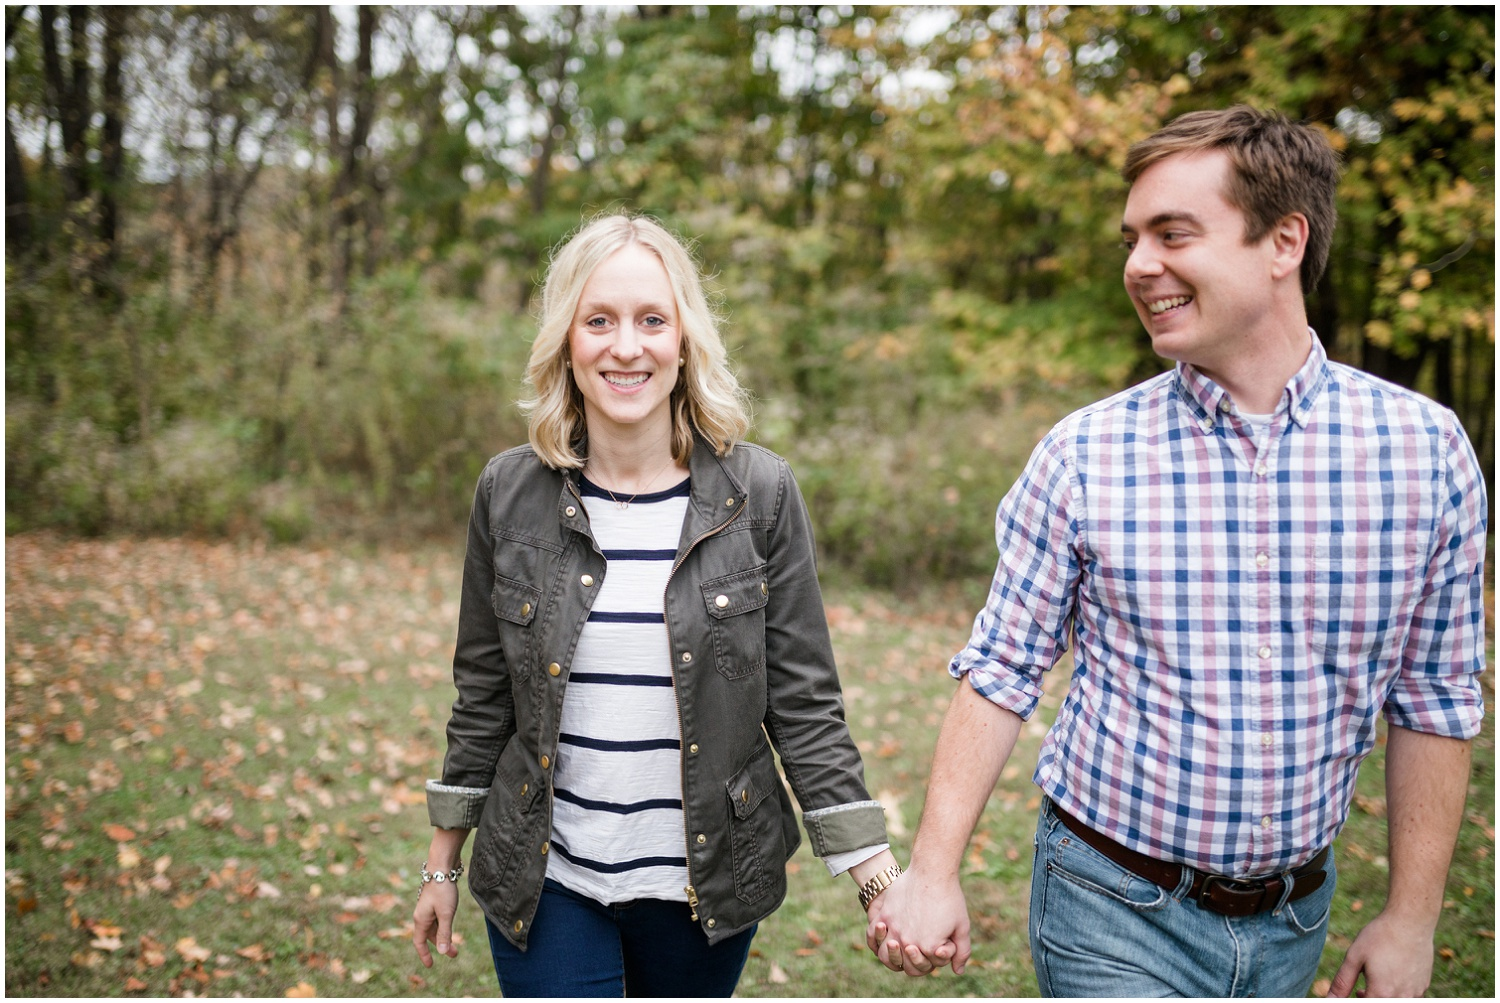 leah-reese-cherokee-park-engagement-session_0257.jpg